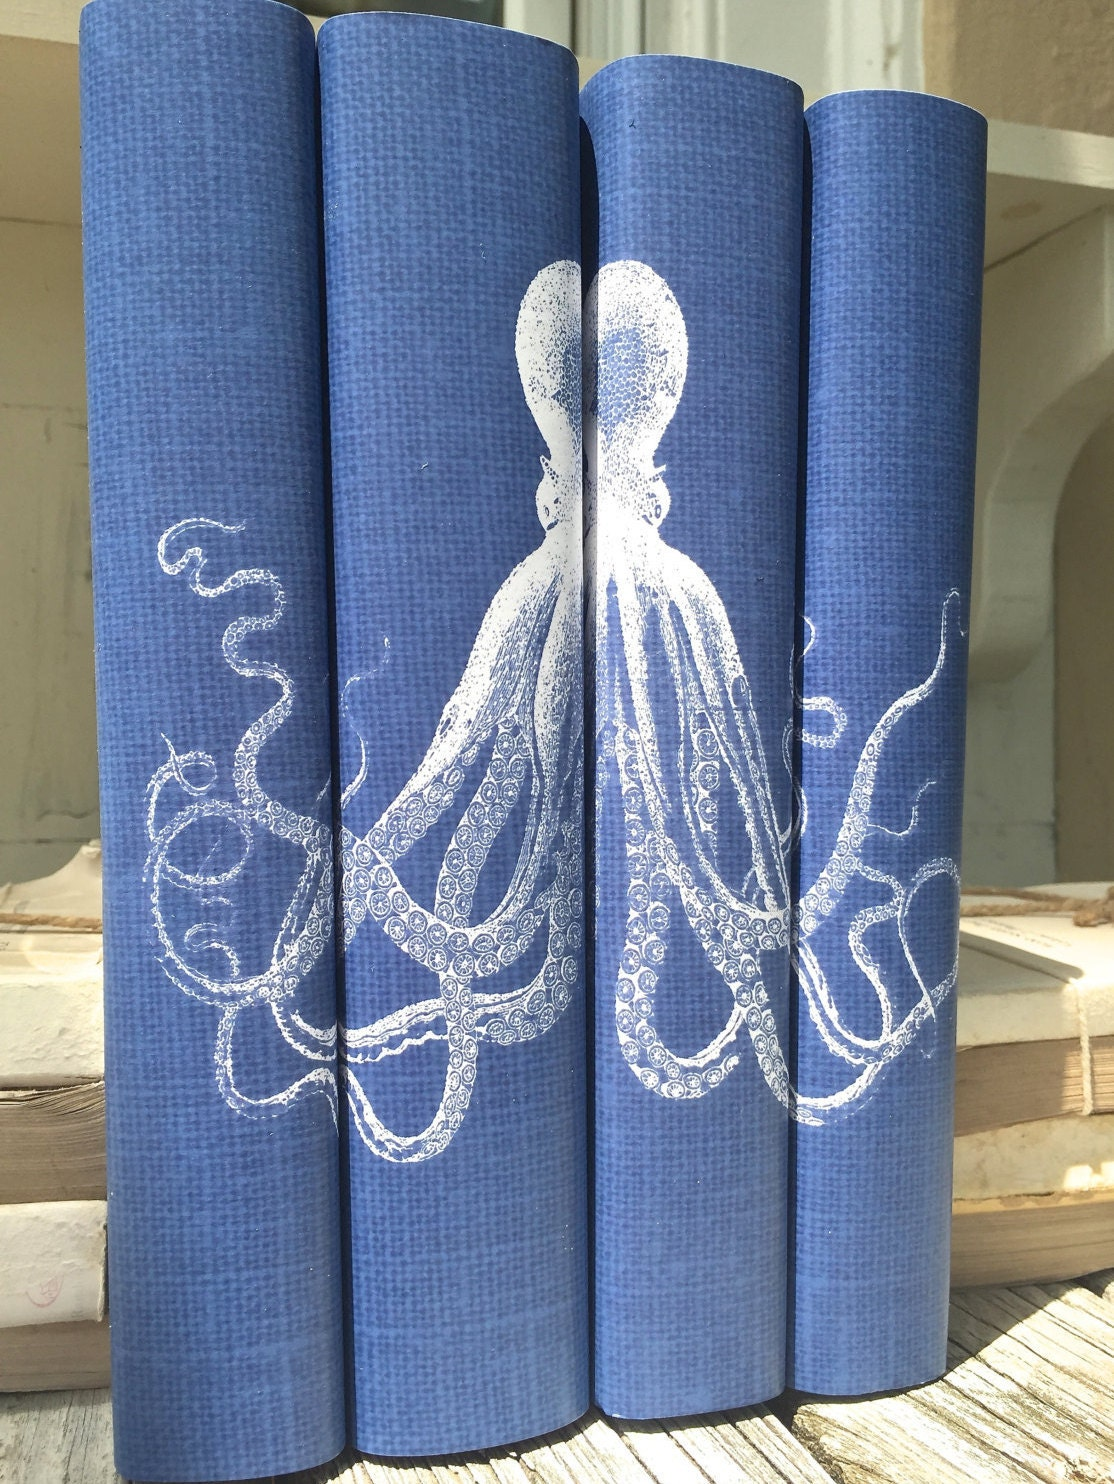 How To Make A Decorative Book Cover : Octopus decorative books with book